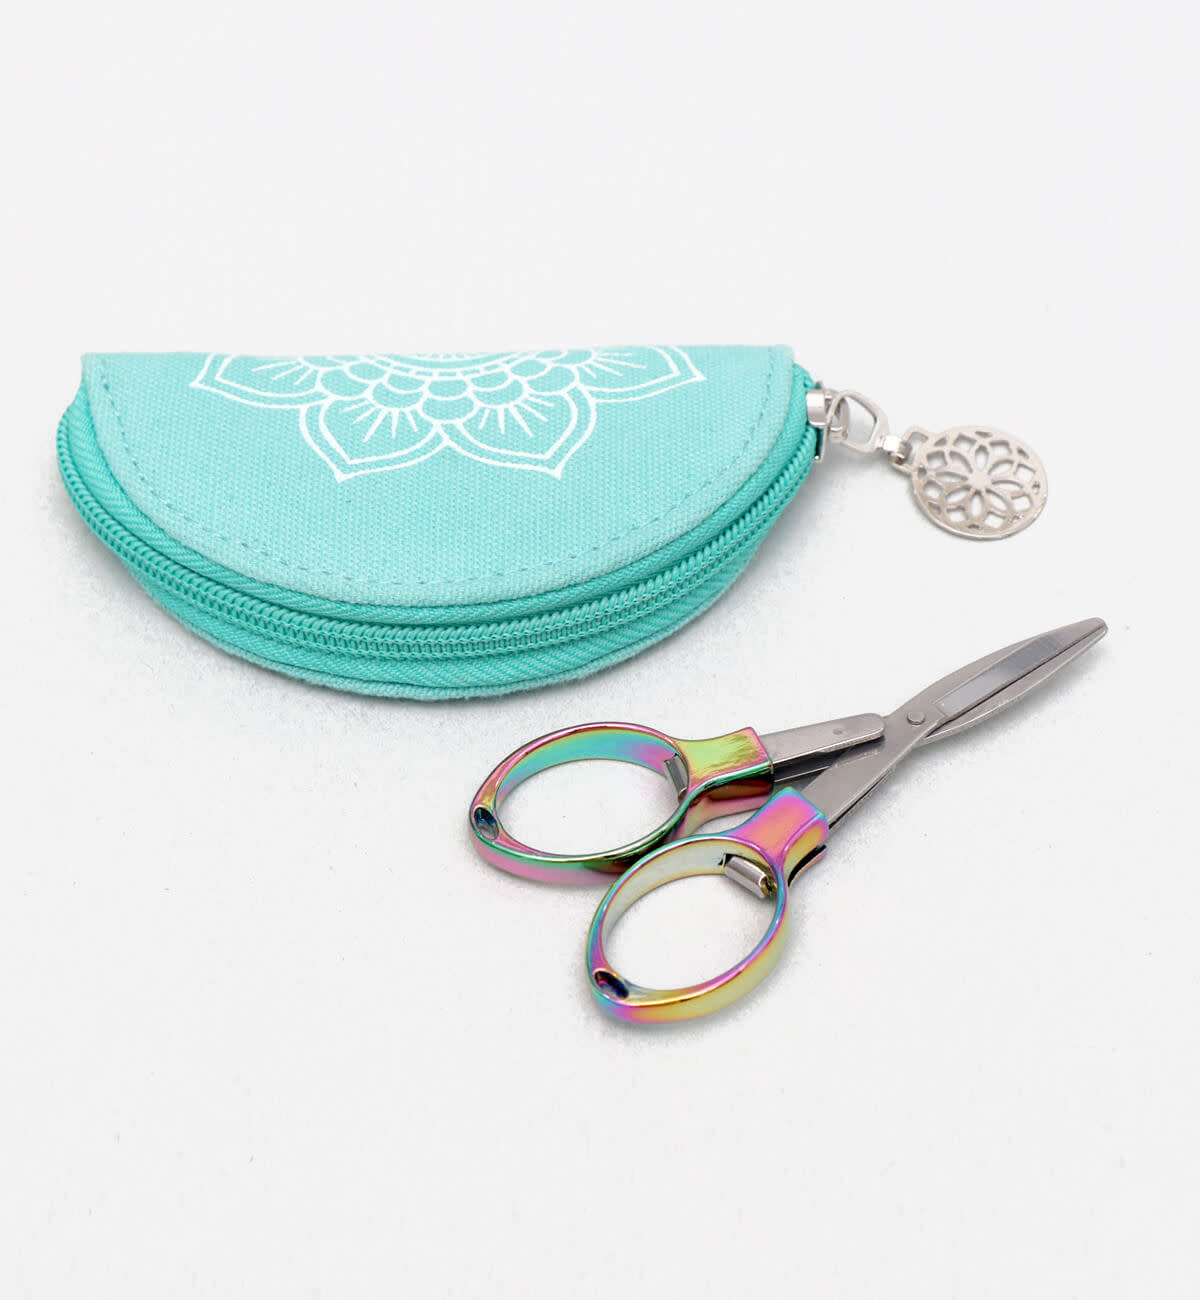 knitters pride Mindful Collection Rainbow Folding Scissors